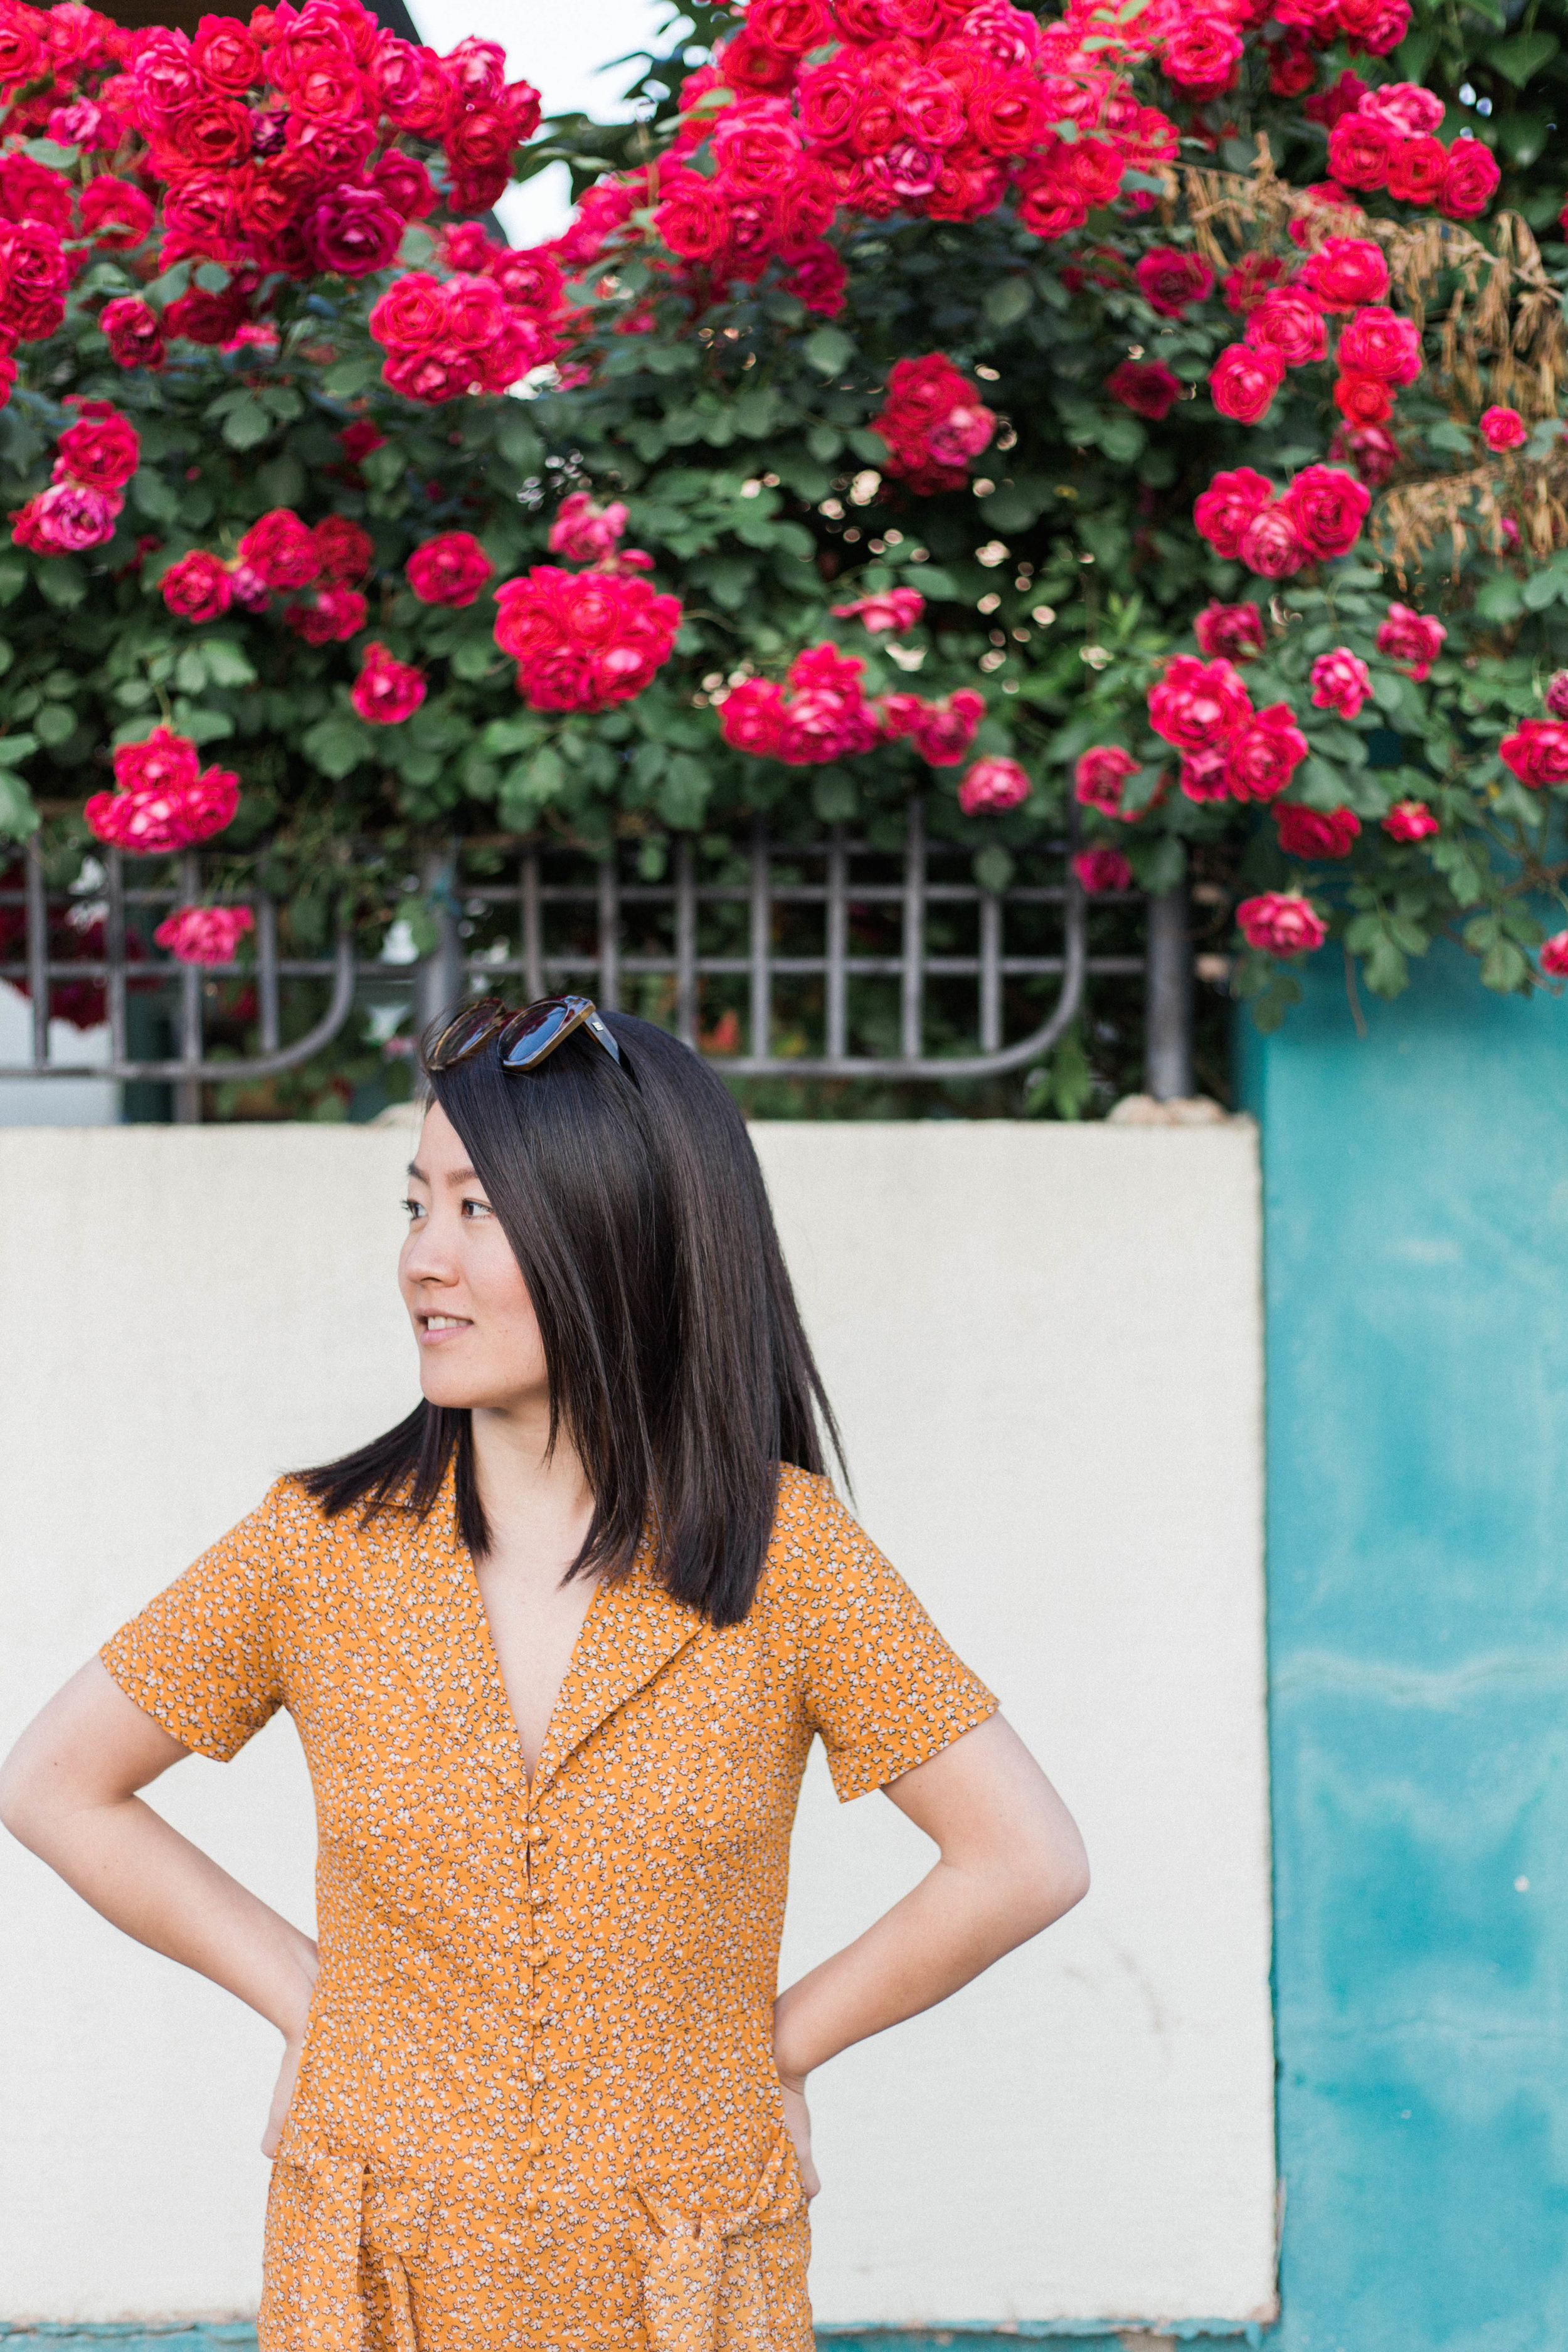 Summer Style   On the Street Where We Live (aretherelilactrees.com)